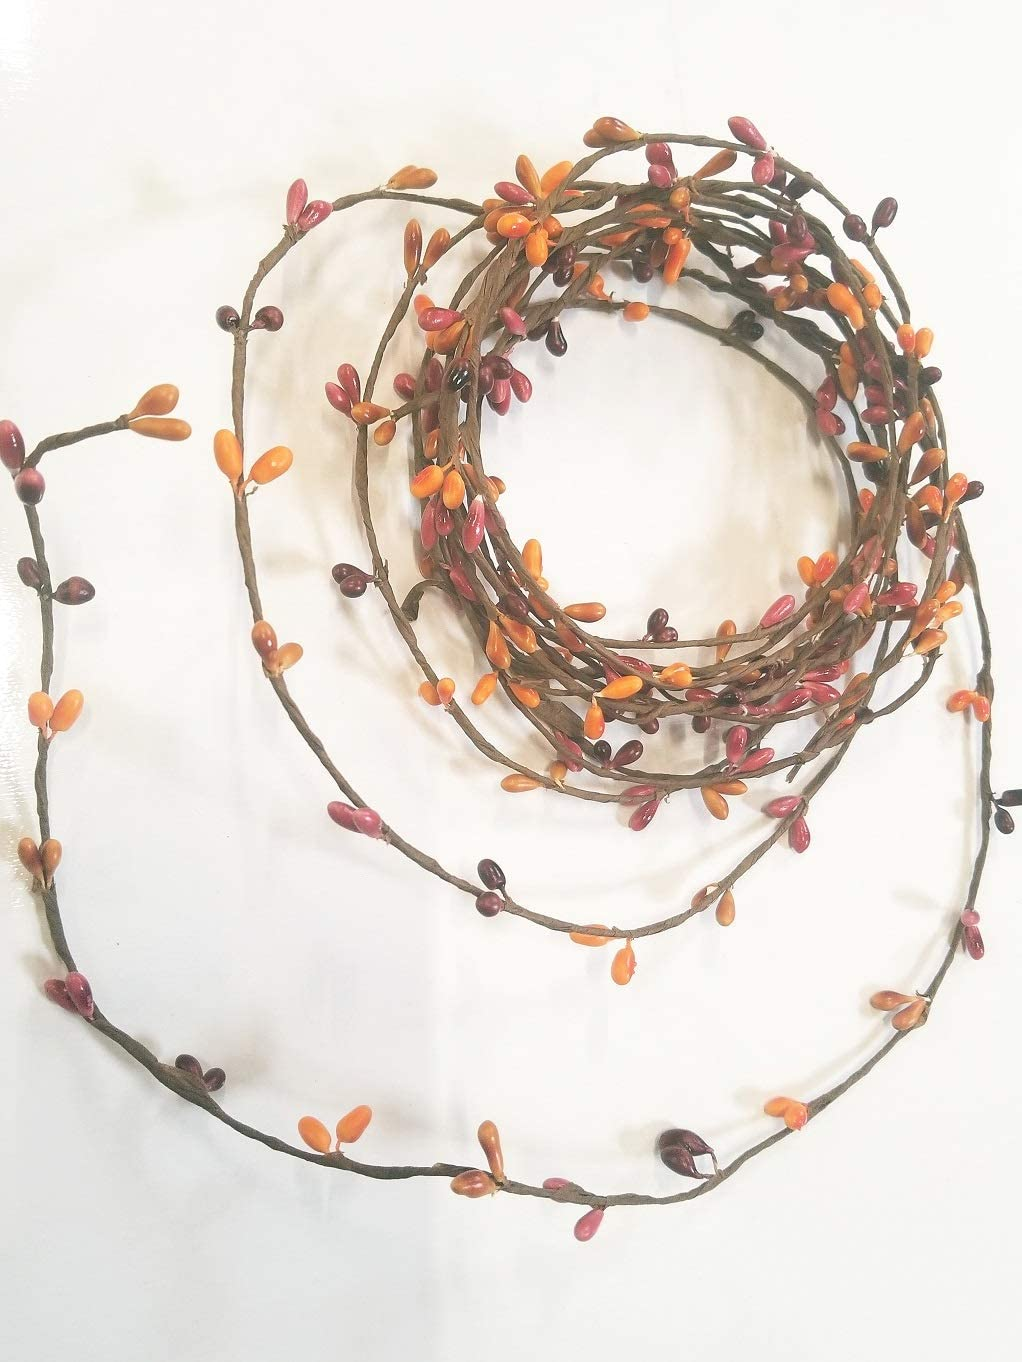 Sunset Orange Pip Berry Single Ply Garland 18' Country Primitive Floral Craft Decor - 3 Strands of 6' Garland That Can Be Utilized Separately or Twisted Together to Equal 18 Feet of String Garland